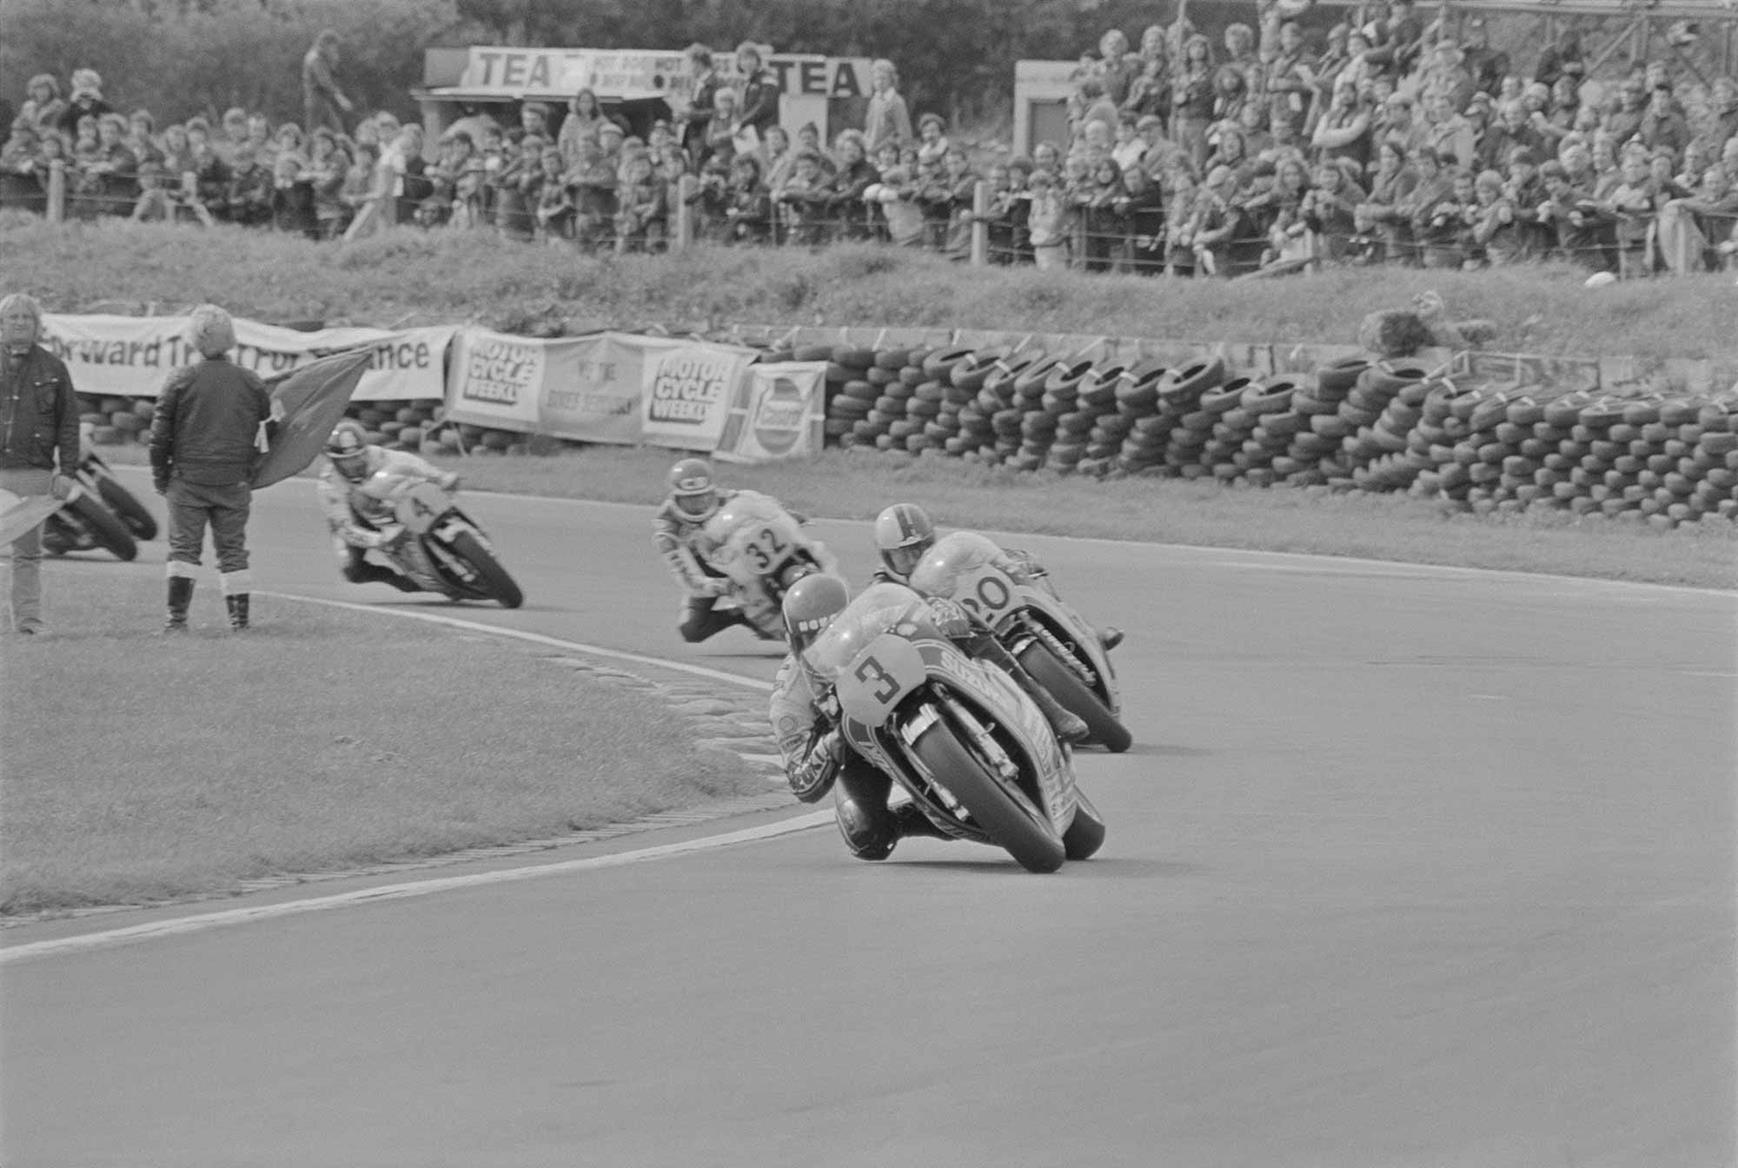 Mamola leads the 1981 Race of the Year at Mallory Park